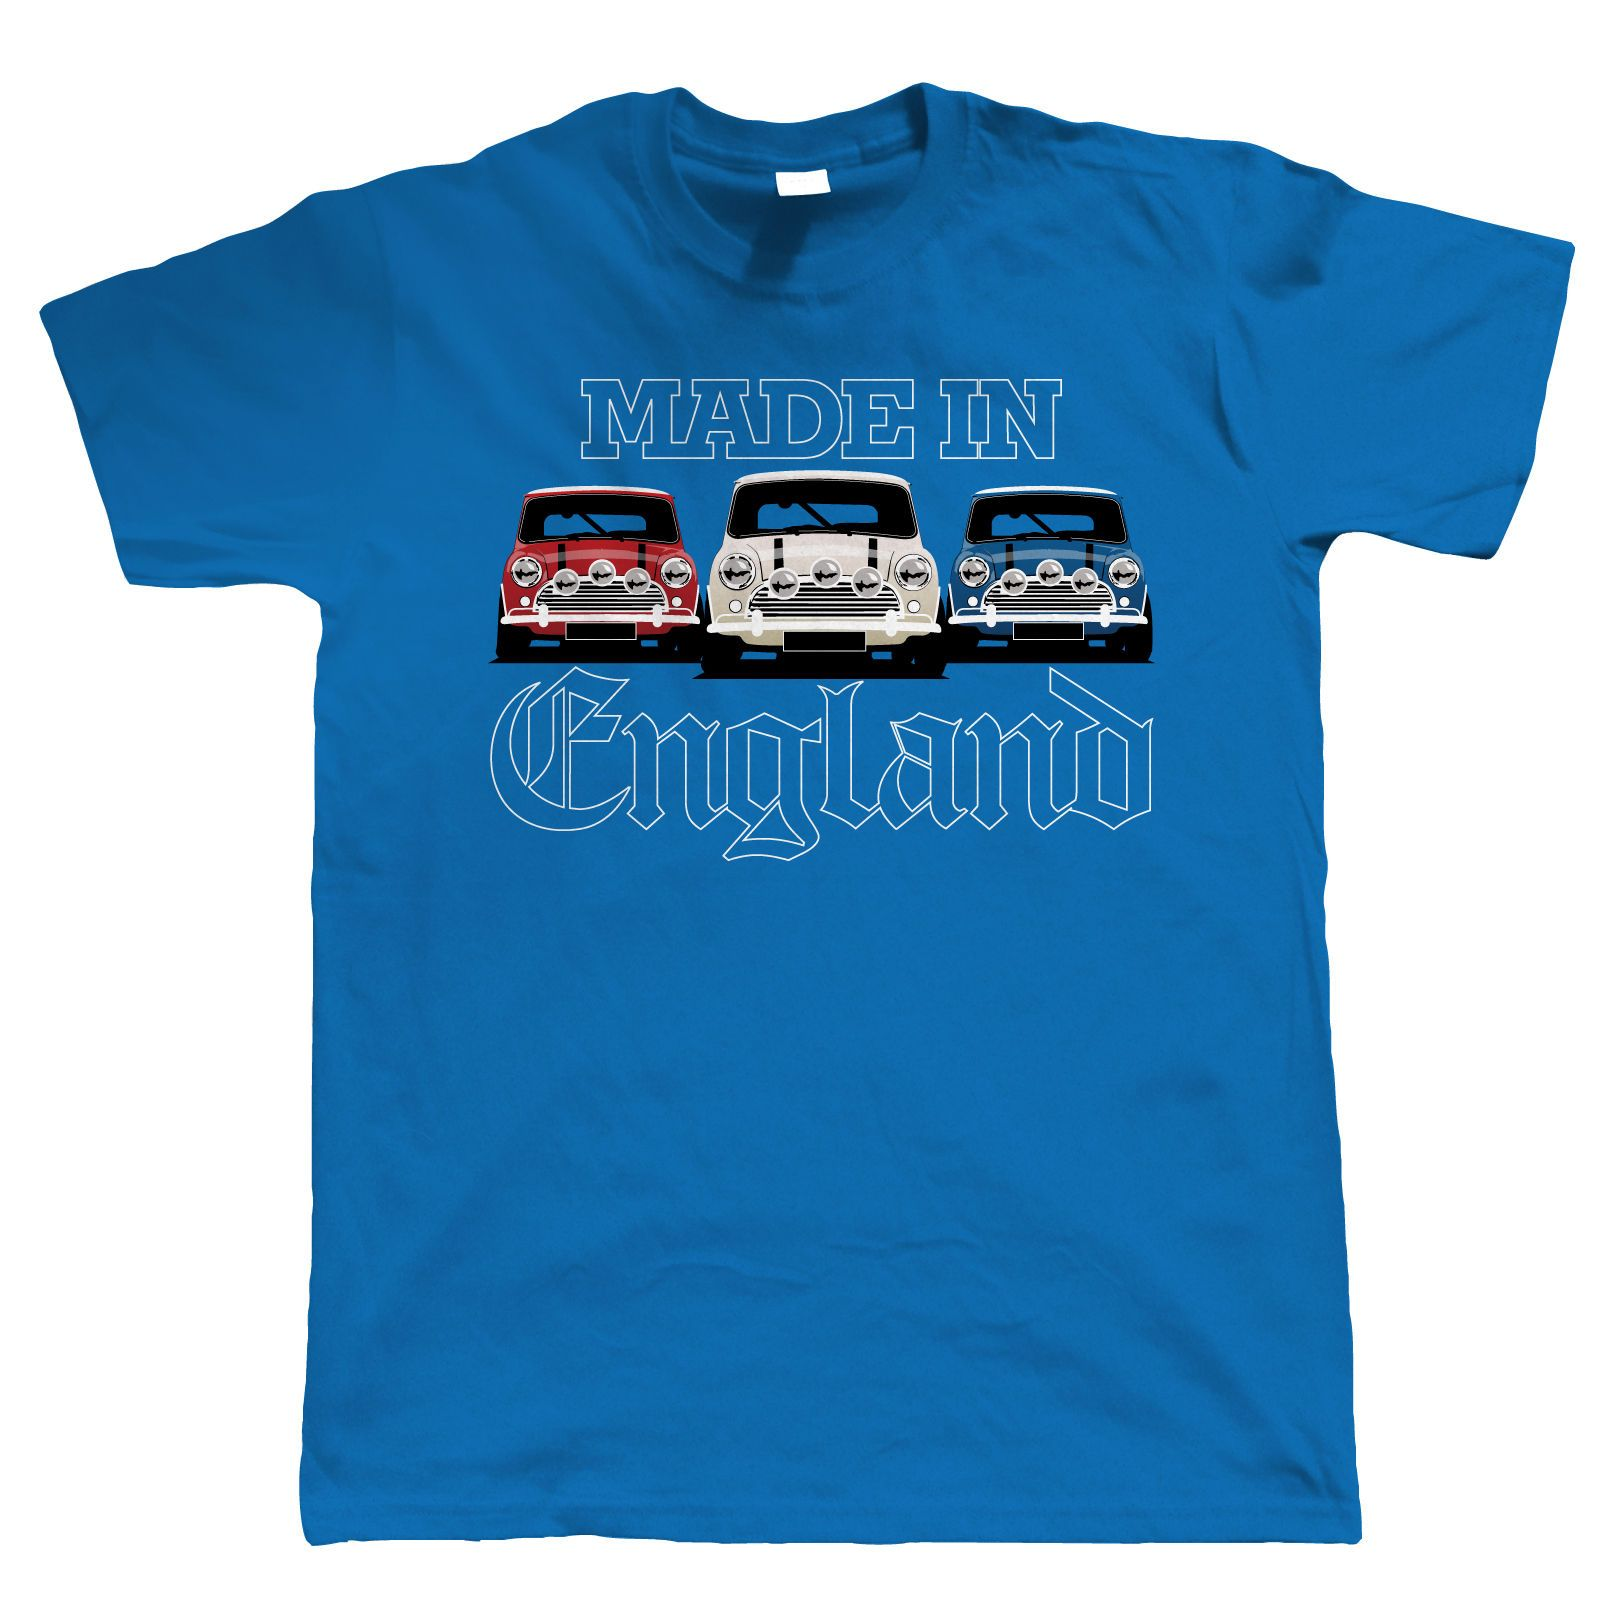 9923d4c9 Still Plays With Cars, Classic Cooper, Mens Car T Shirt - Birthday Gift for  Dad | eBay. Retro Shirts Crew Neck ...